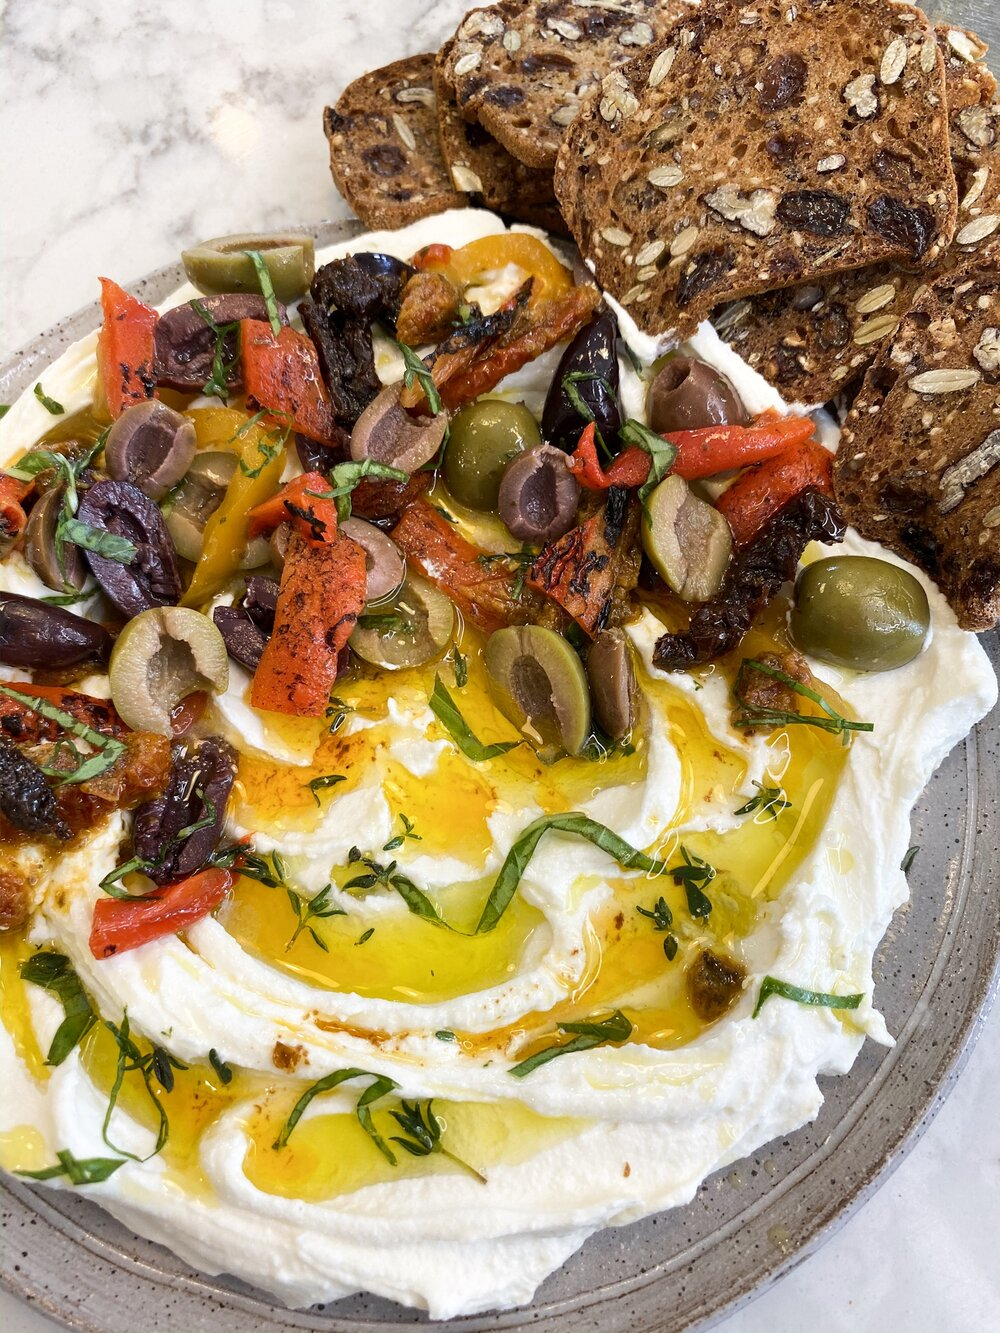 Goat Cheese spread with sun-dried tomatoes, olives and roasted red peppers